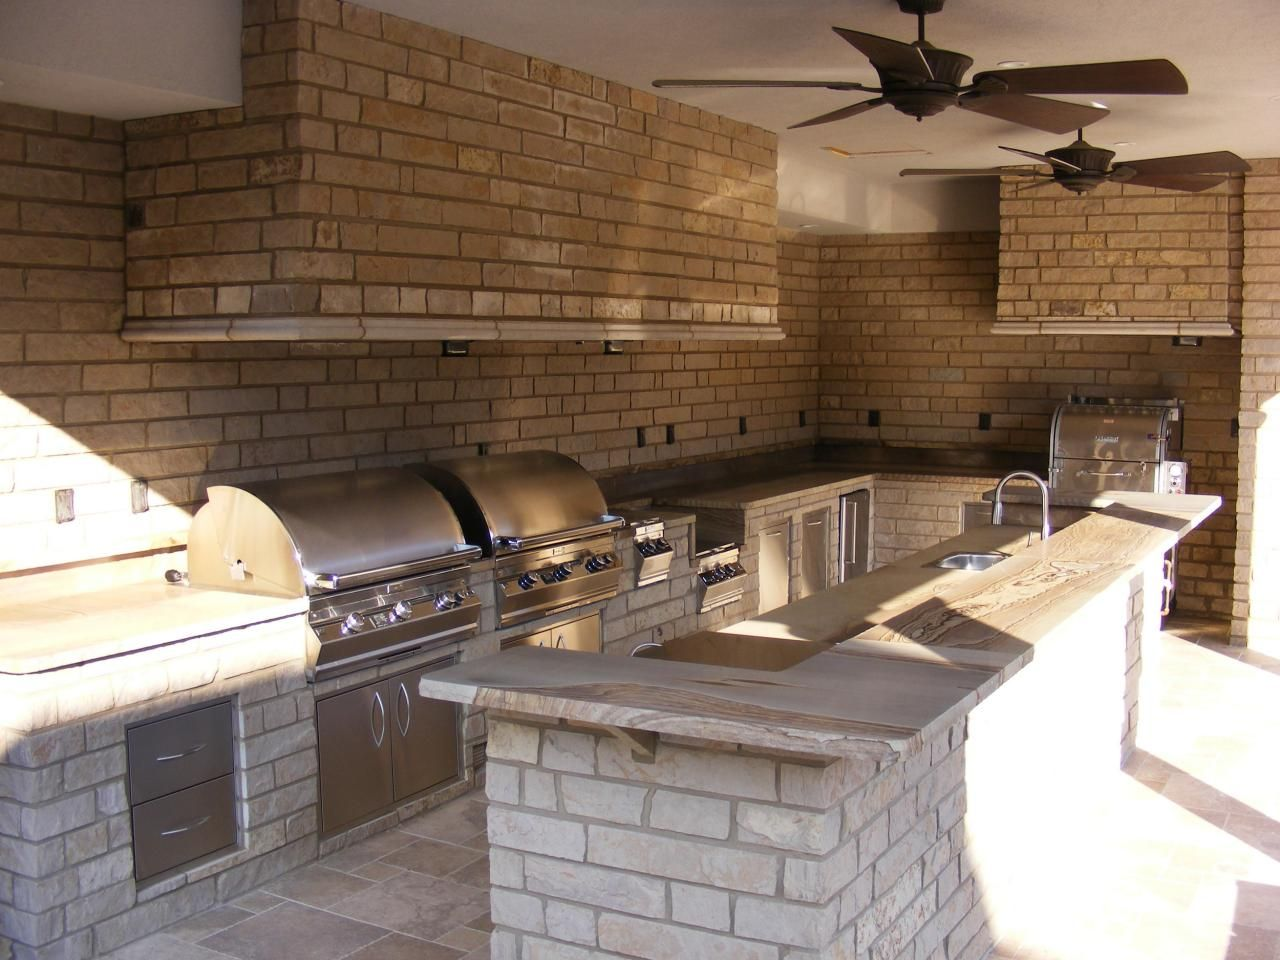 33 Amazing Outdoor Kitchens | Hgtv, Kitchens and Deck patio on outdoor entertainment designs and ideas, kitchen plans and ideas, kitchen backsplash designs and ideas, summer kitchen designs and ideas, kitchen cabinets and ideas,